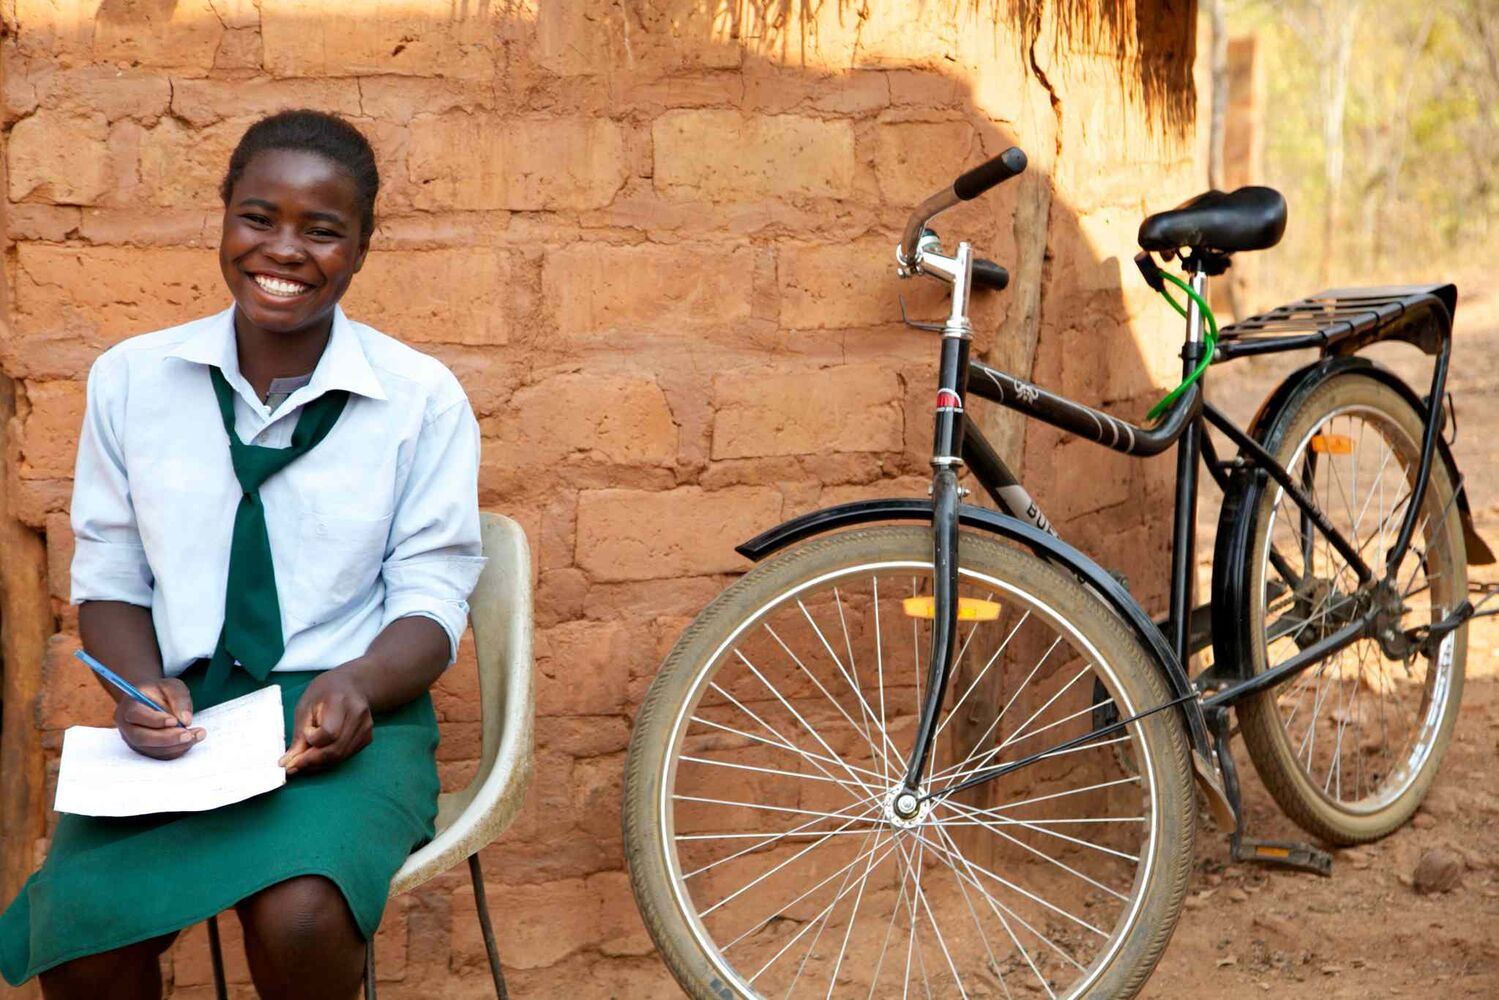 Now, with the Buffalo Bike, she arrives to school on time every day and is ready to study.